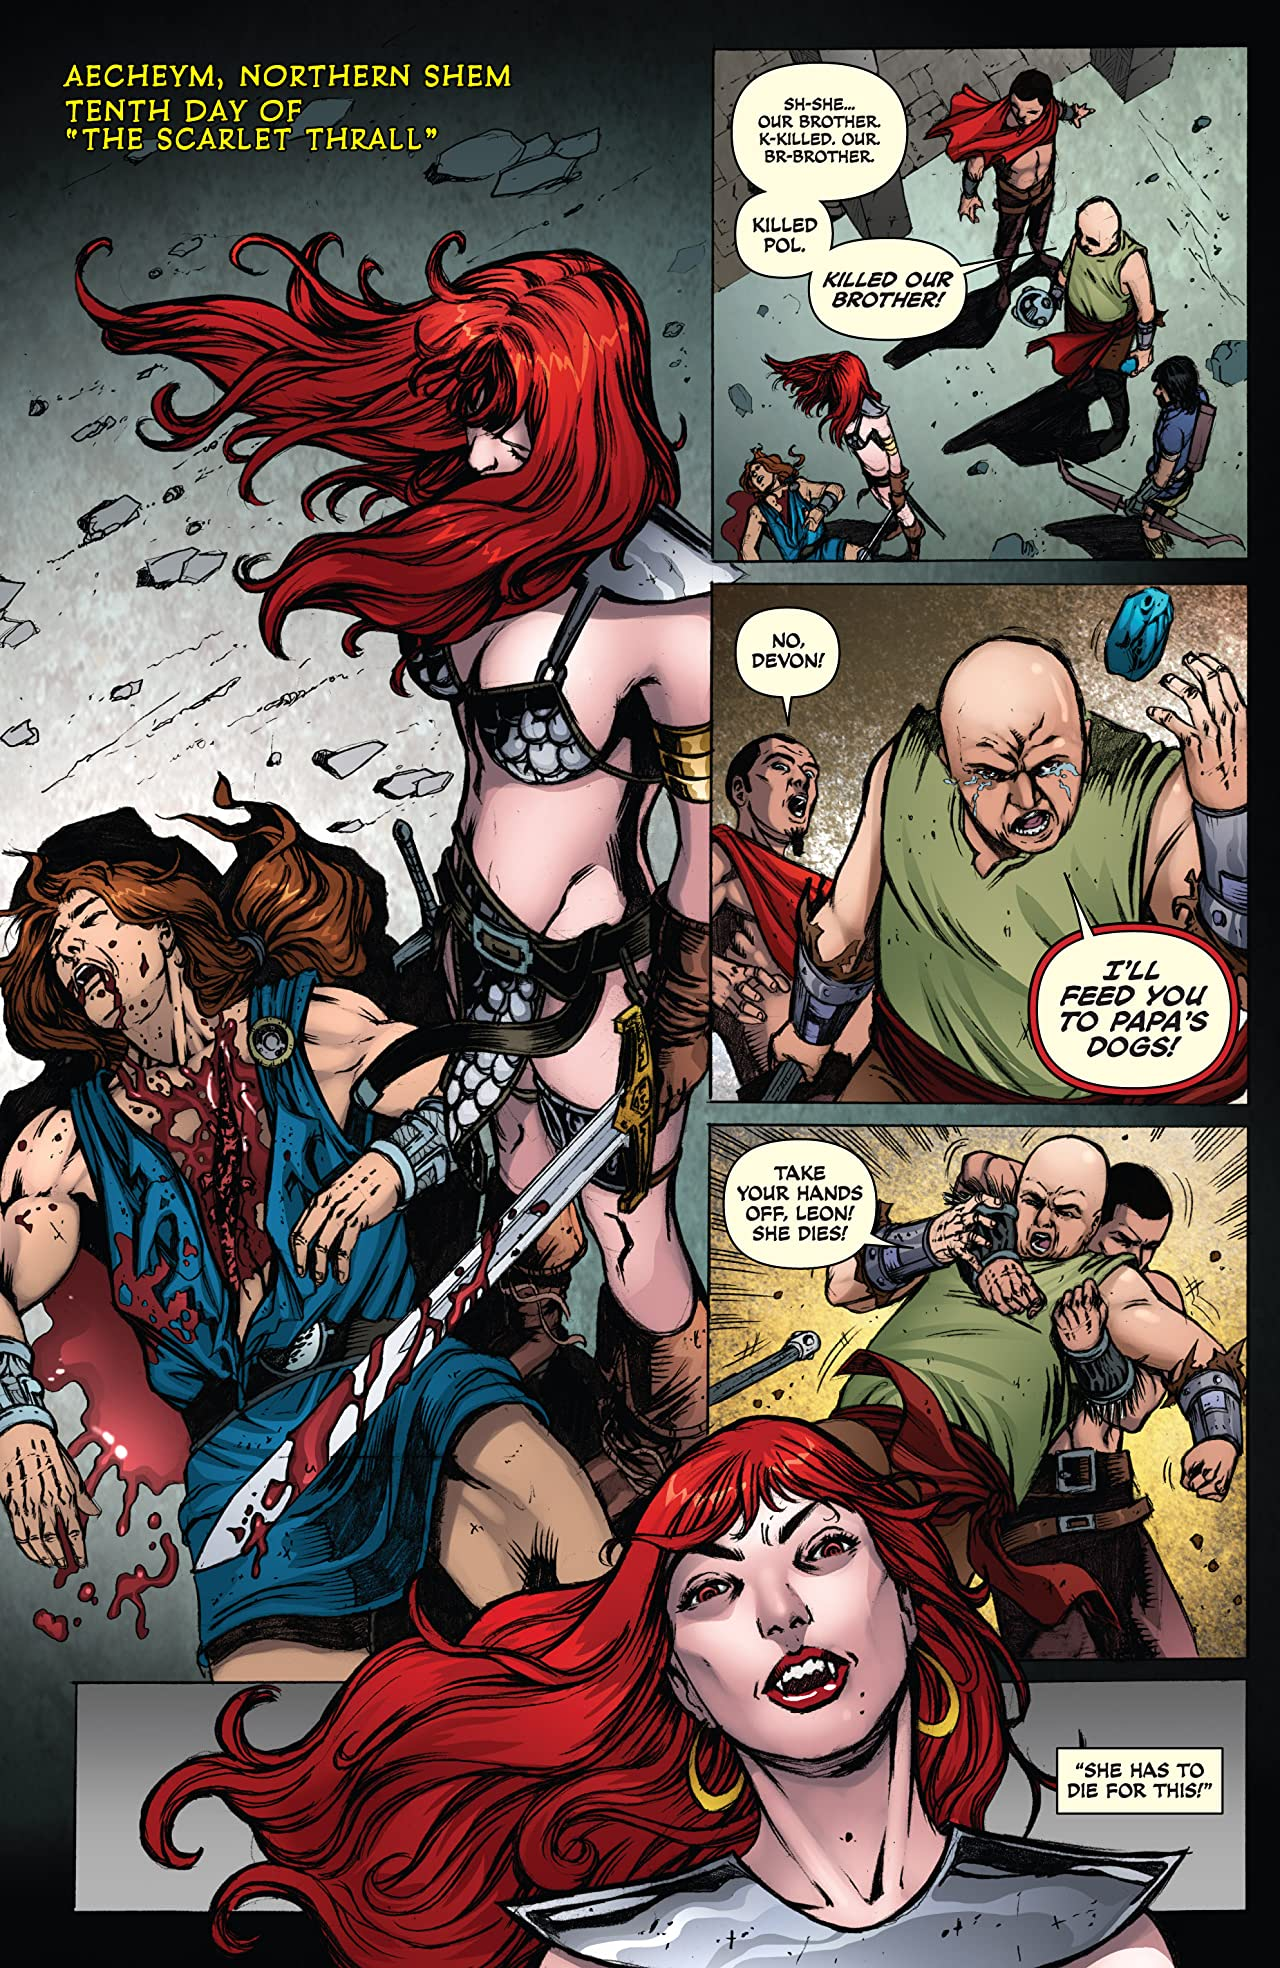 Red Sonja: She-Devil With A Sword #79